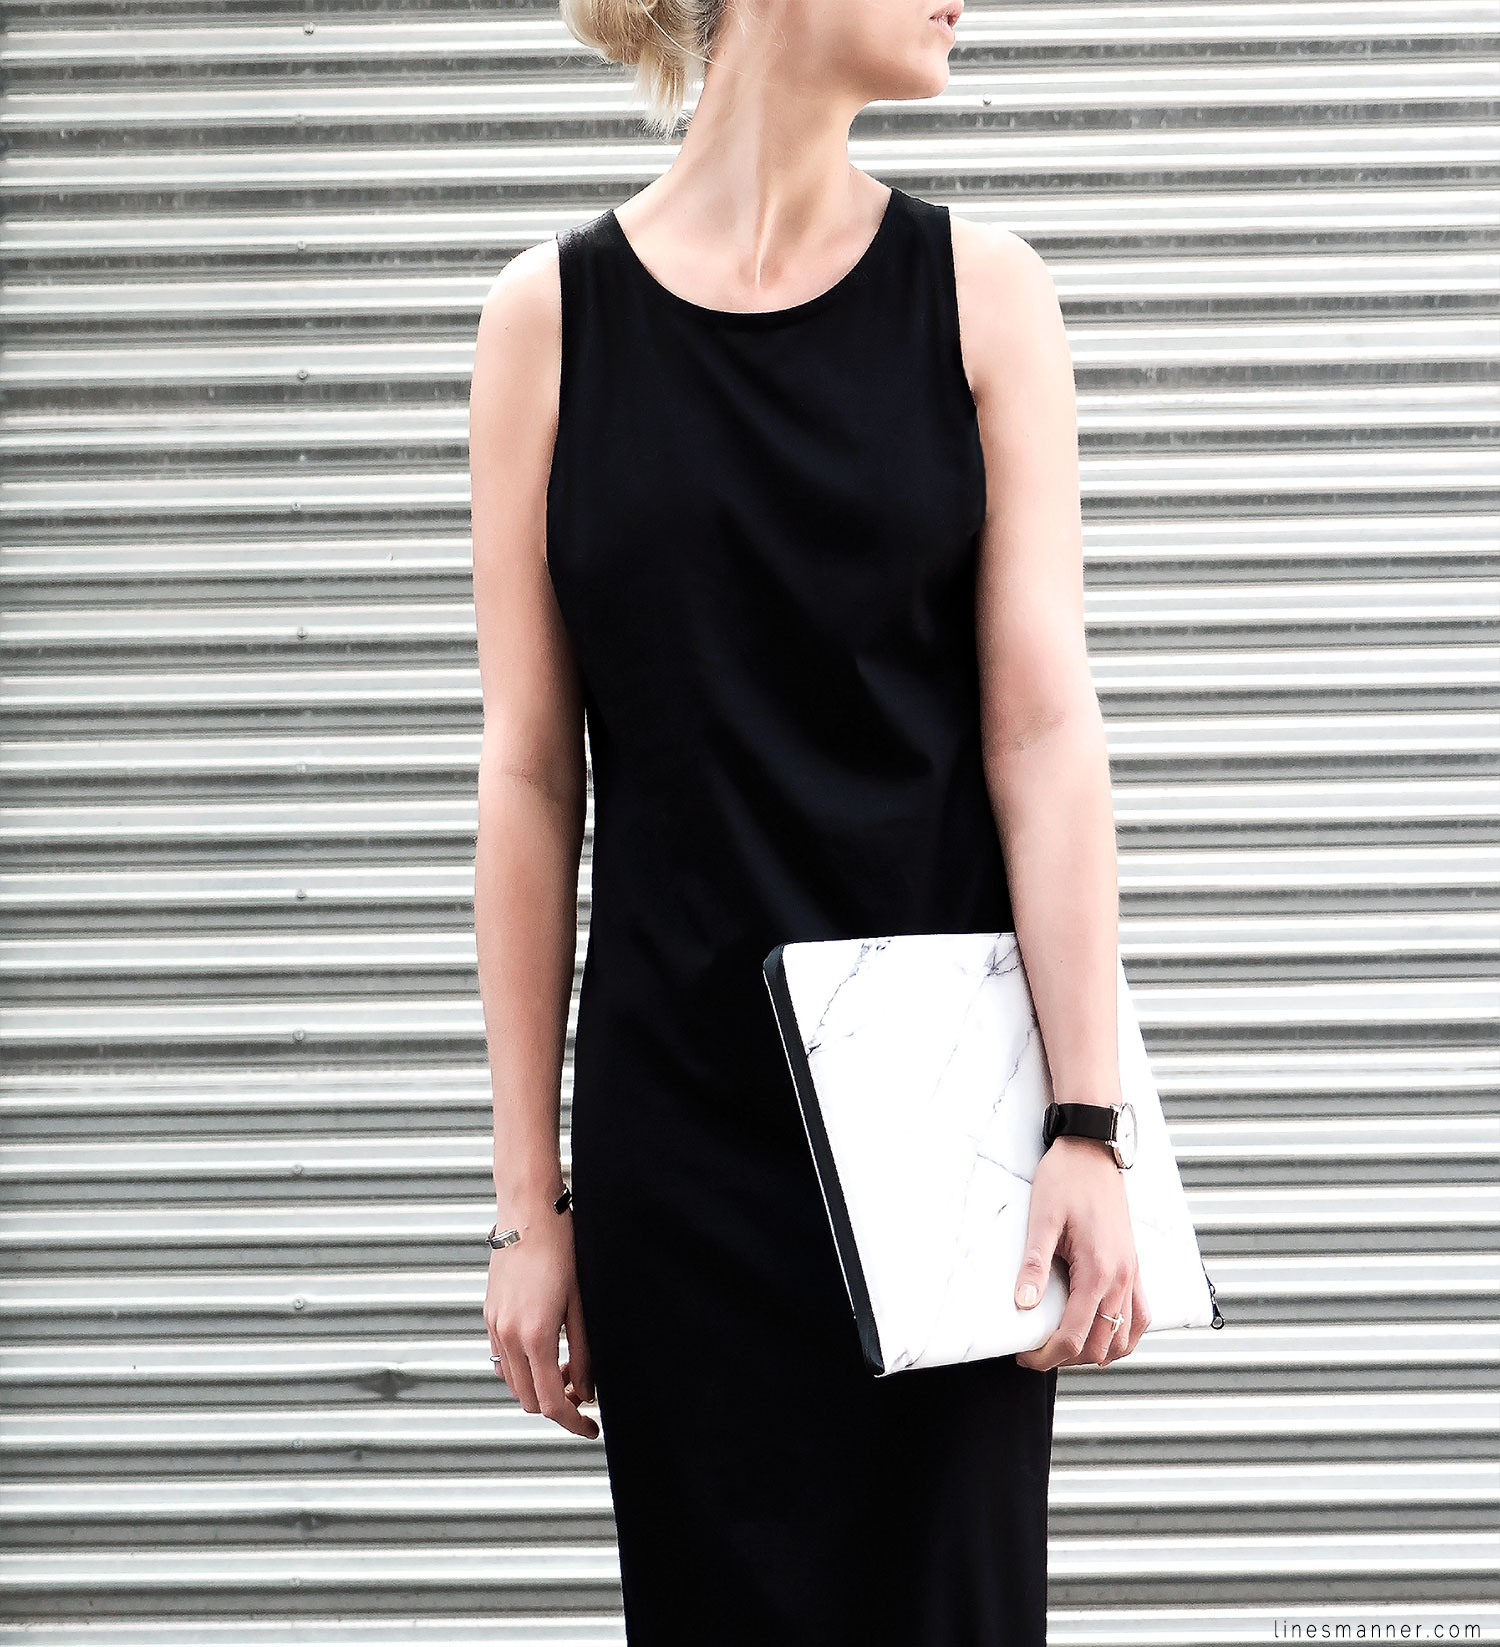 Lines-Manner-Minimal-Clean-Simplicity-Slide_Slit_Dress-Organic_Cotton-Rada_Studio_Essentials-Marble-Details-Outfit-Fashion-Monochrome-Timeless-Modern-Handmade-2